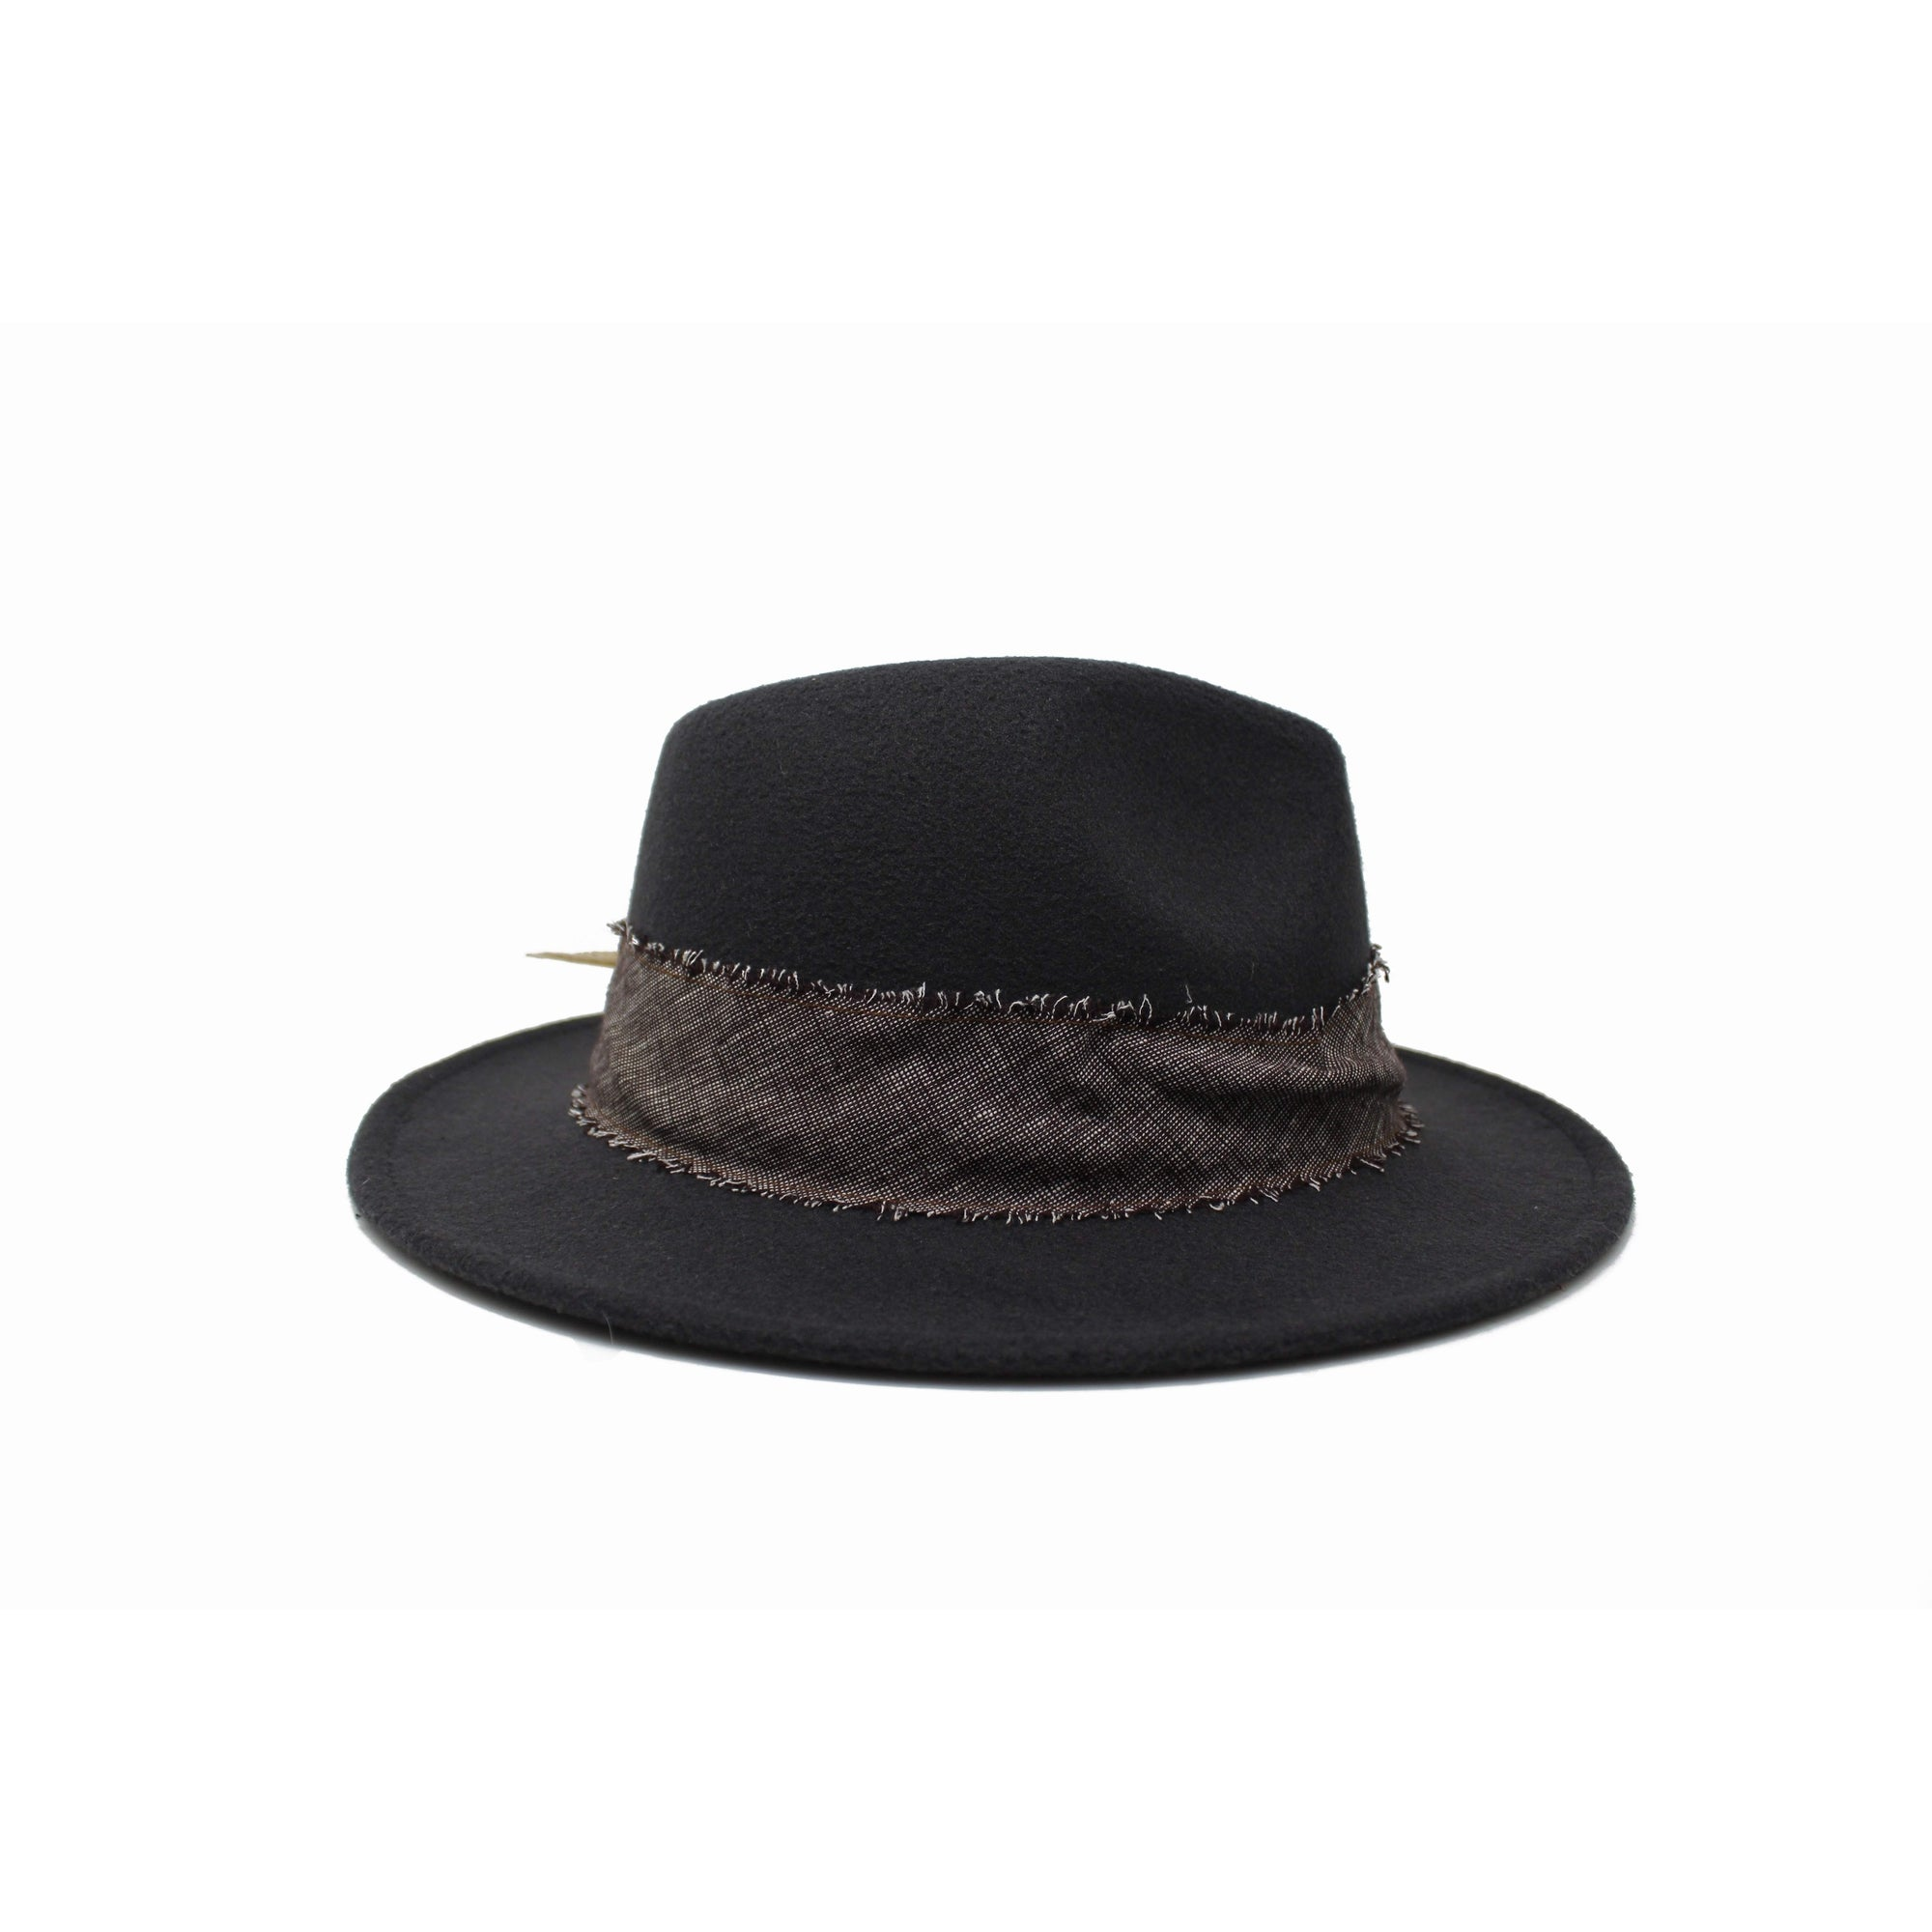 House of Hatters- Santiago Mens Fedora 7